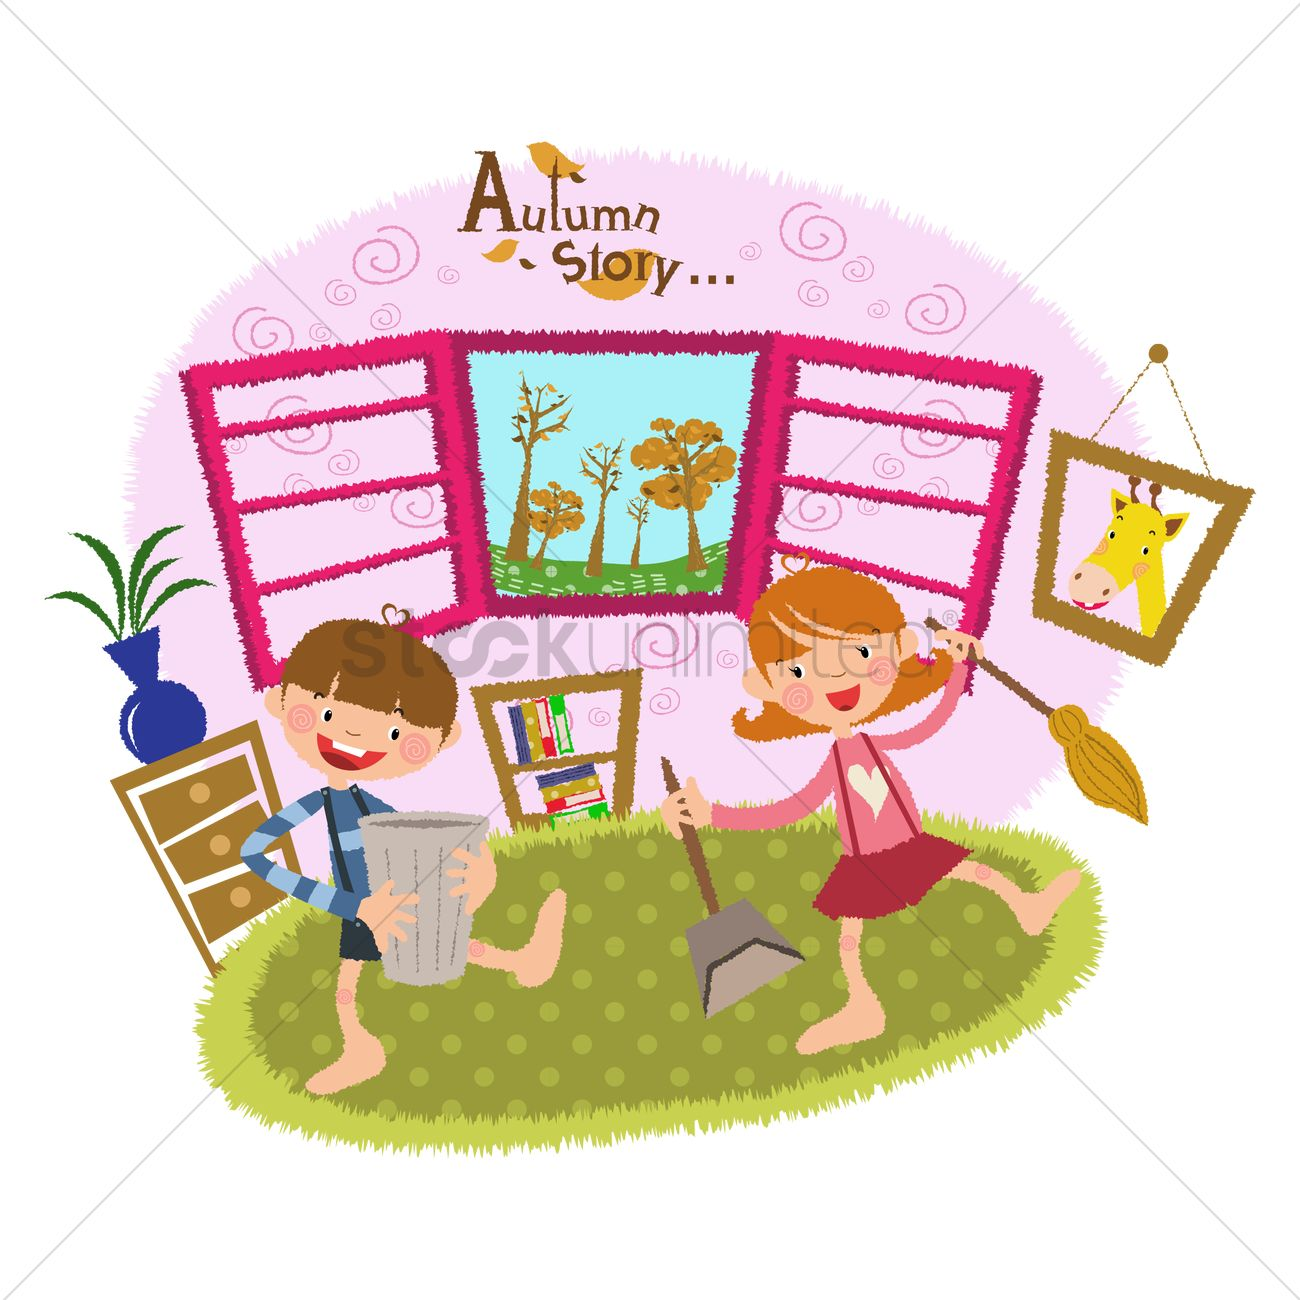 children cleaning their room vector image 1497875 stockunlimited rh stockunlimited com girl cleaning room clipart clean your room clipart